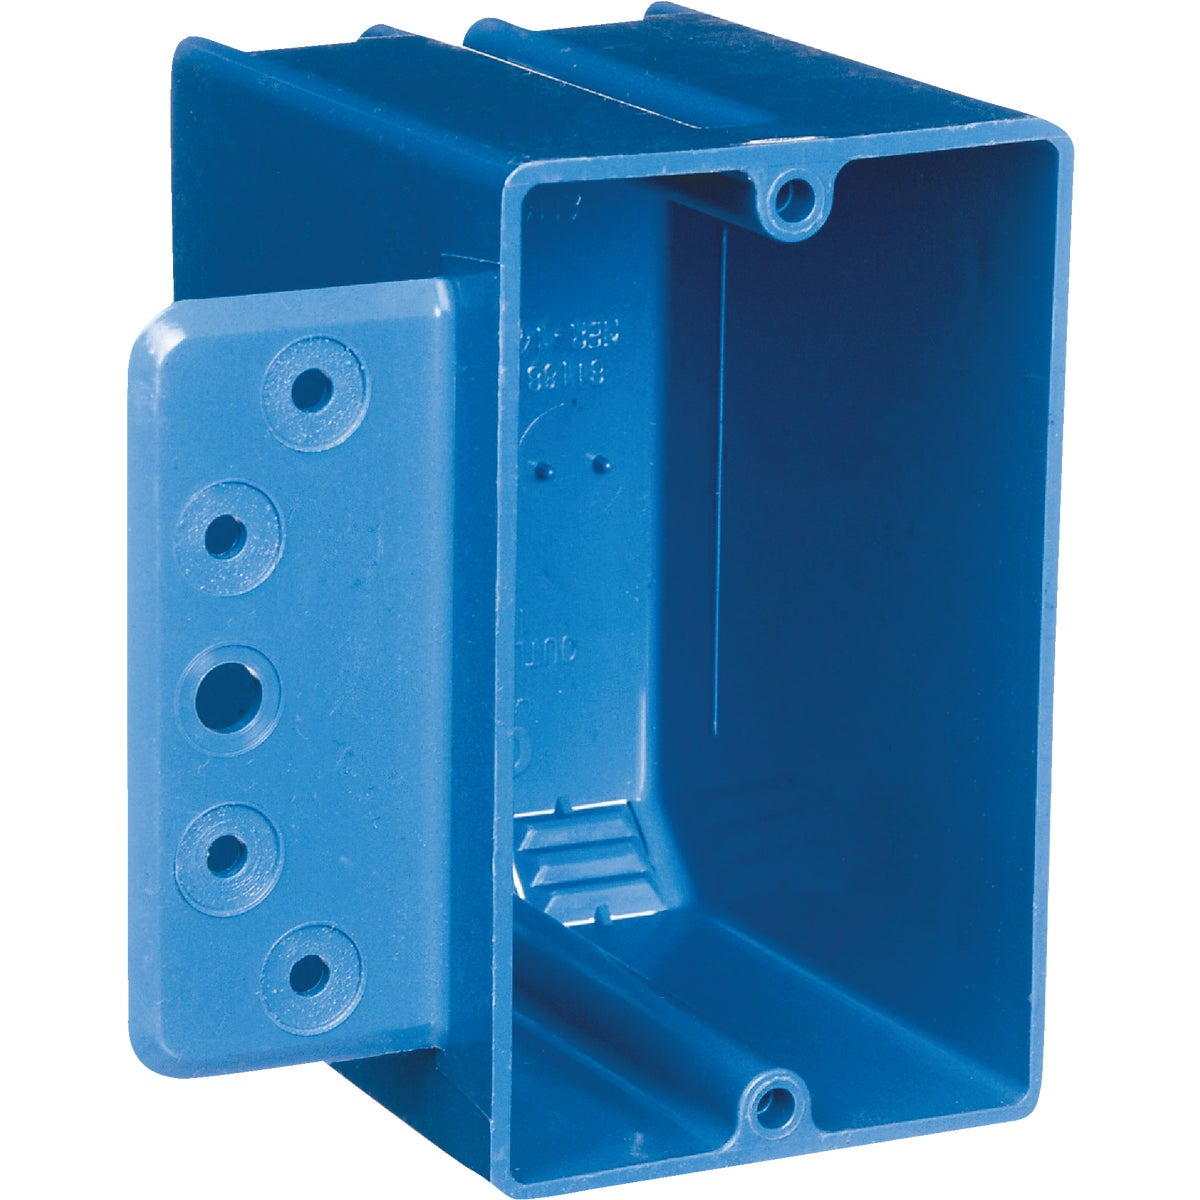 1 GANG SWITCH BOX - B118BUPC by Thomas & Betts